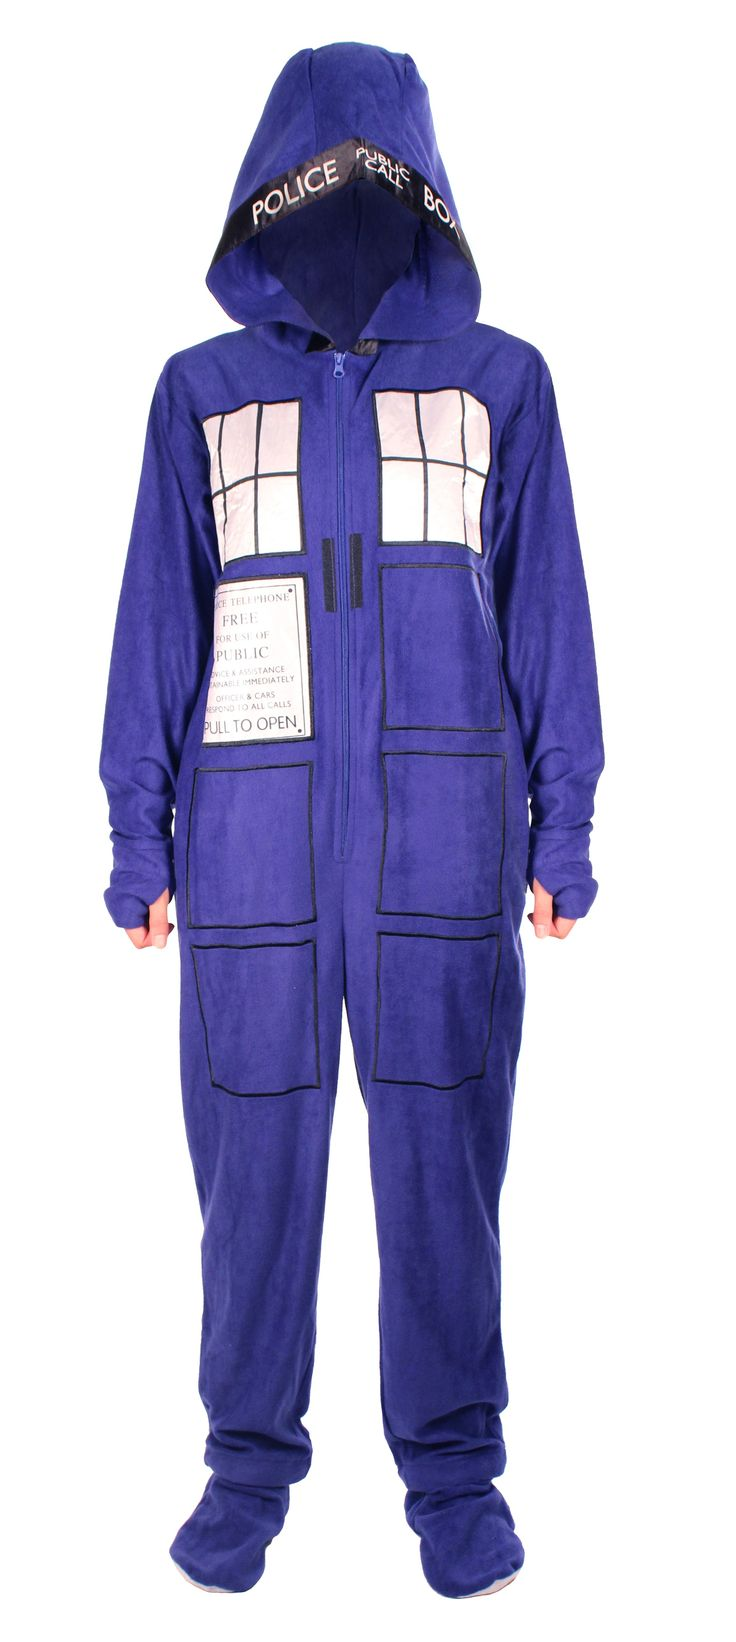 Doctor Who: Tardis Adult Onesie with Removable Feet | Doctor Who Shop :: I got mine for Christmas and I love it! So warm and comfy